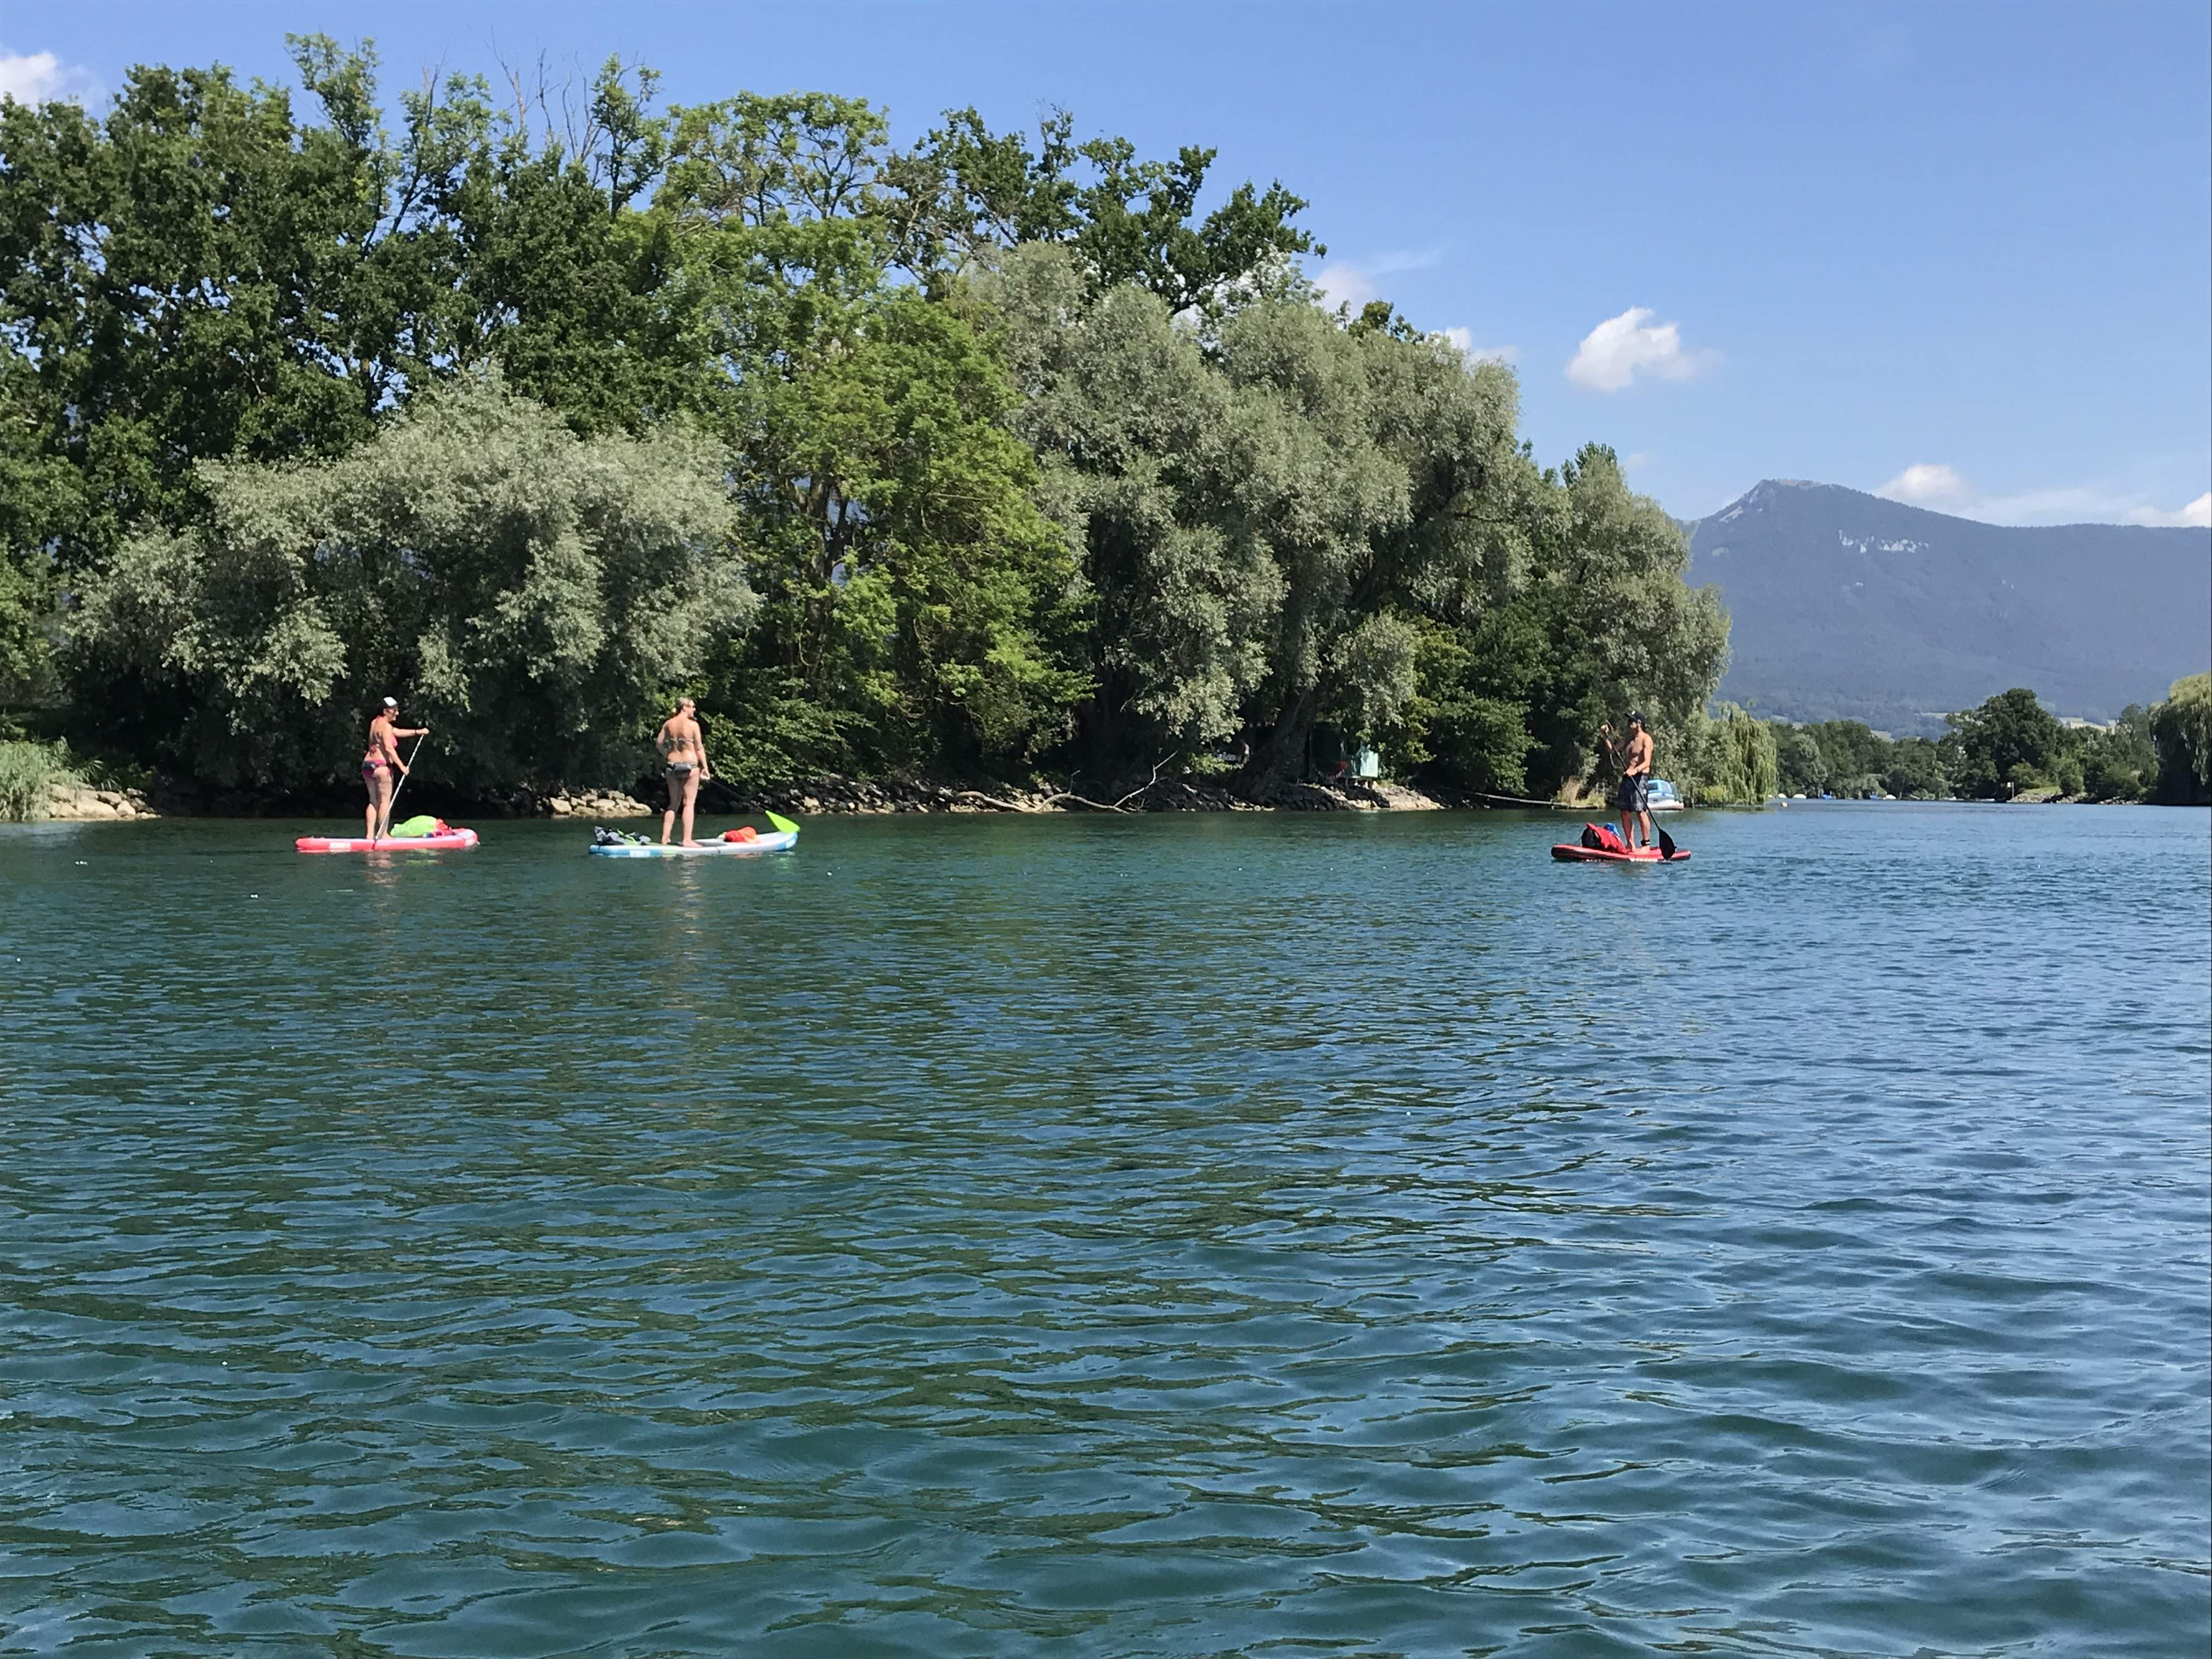 8/4 - Peaceful SUP cruise on the Aare river